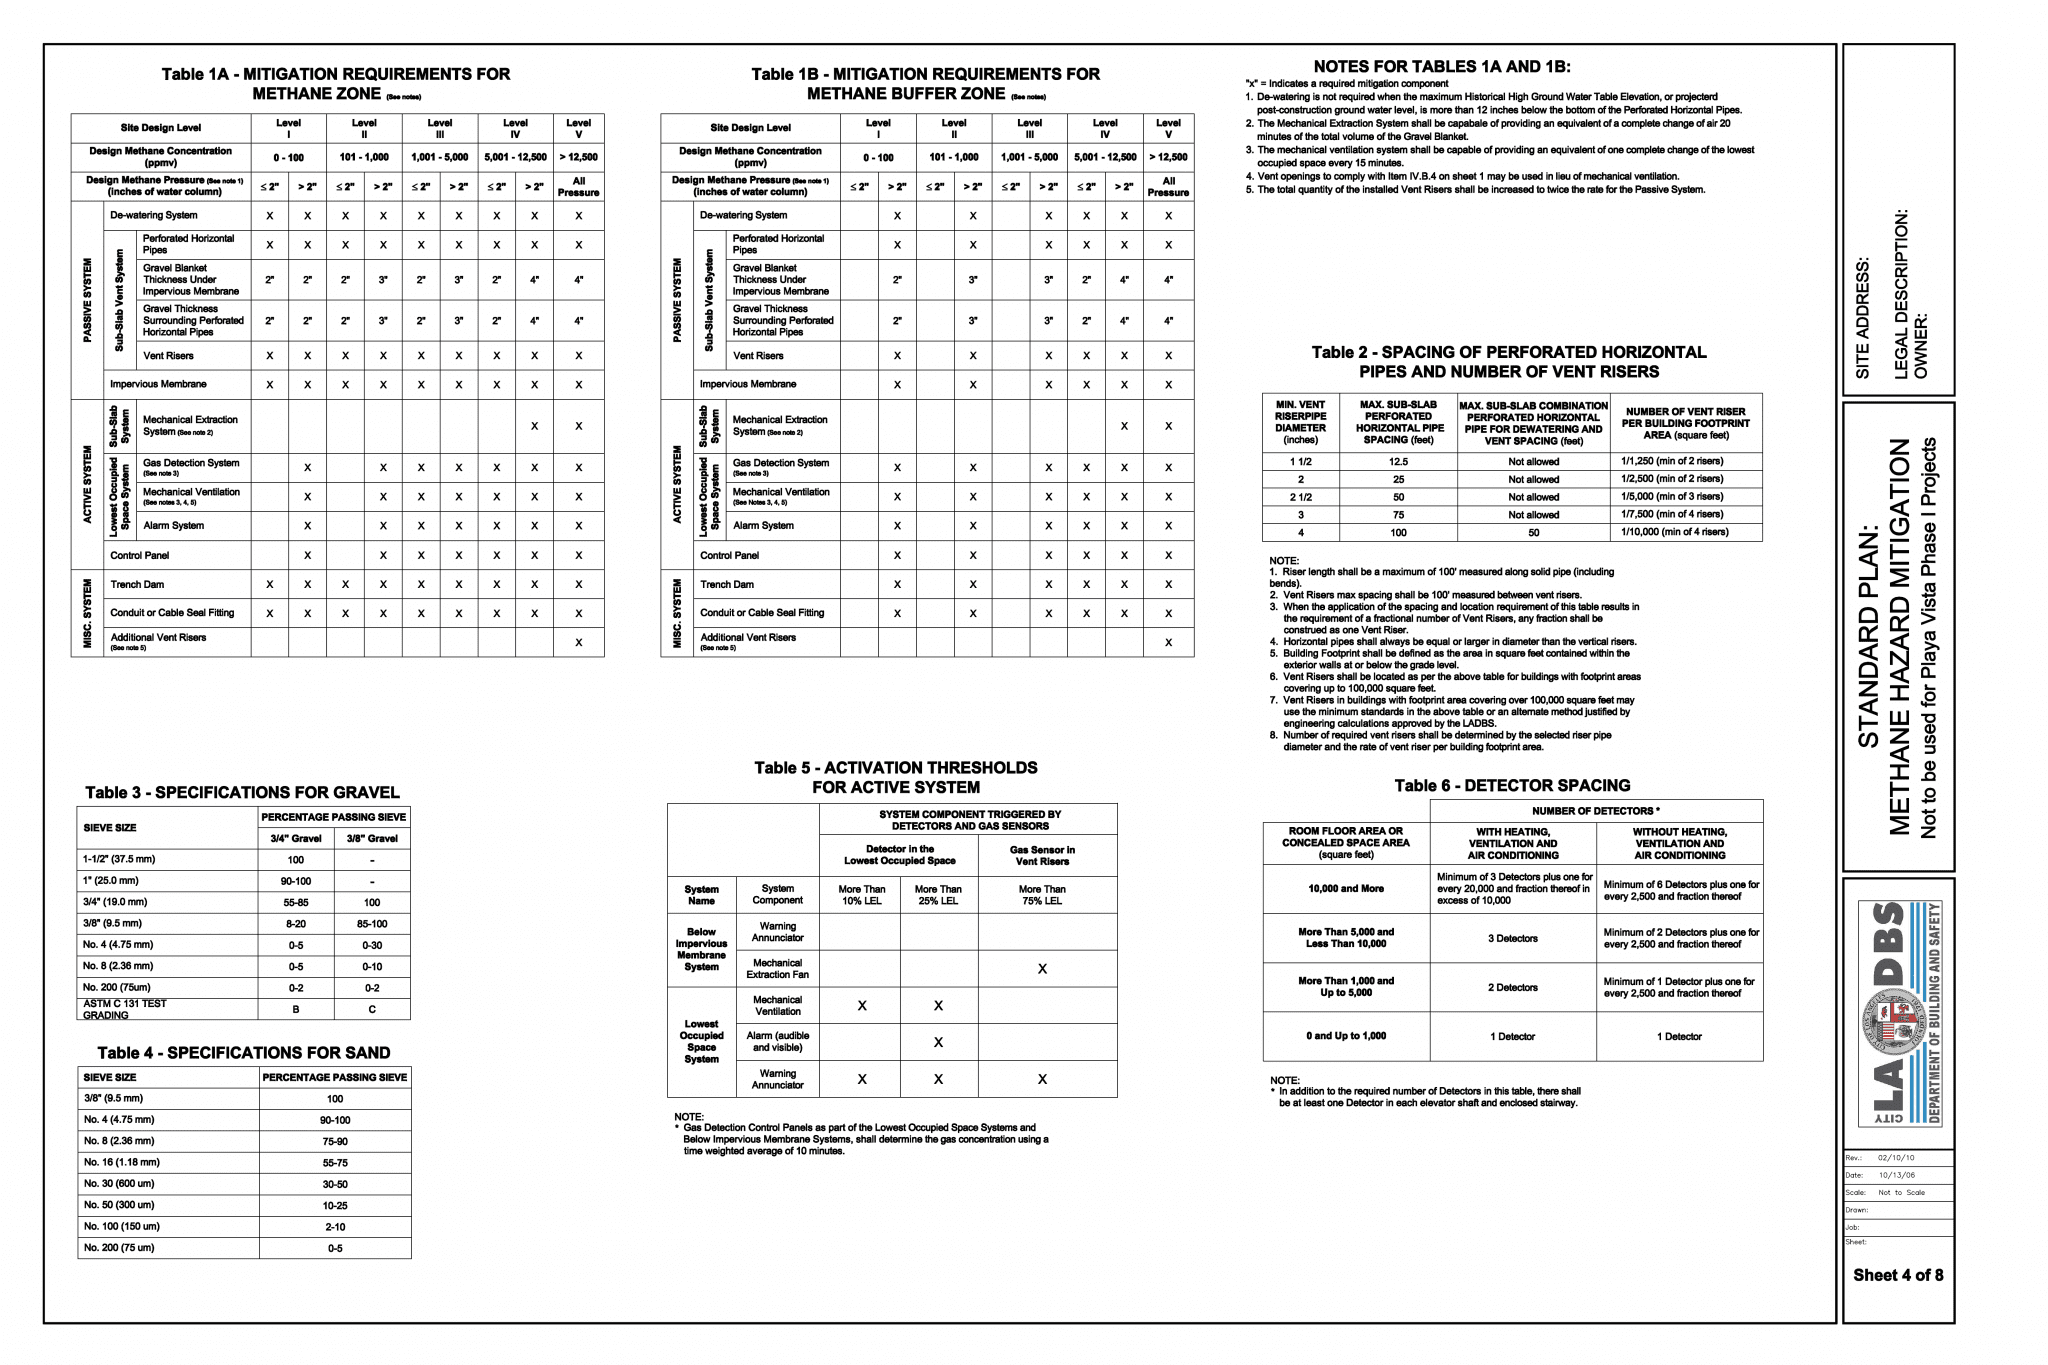 City of Los Angeles Methane Mitigation Standards LADBS Plan Page 4 - Courtesy of Geo Forward